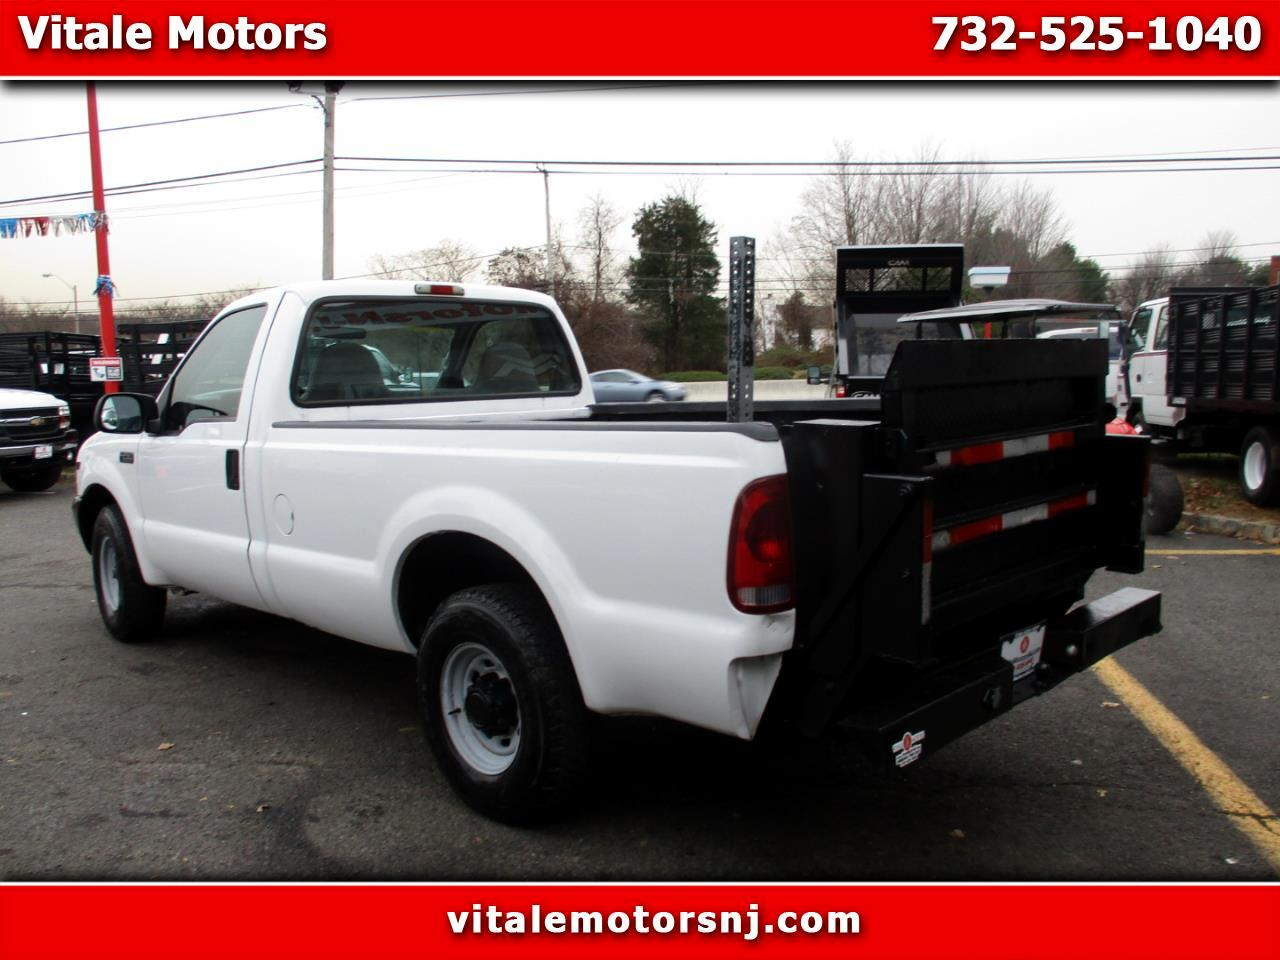 2001 Ford F-250 SD XL LONG BED REG. CAB ** W/ LIFT GATE **